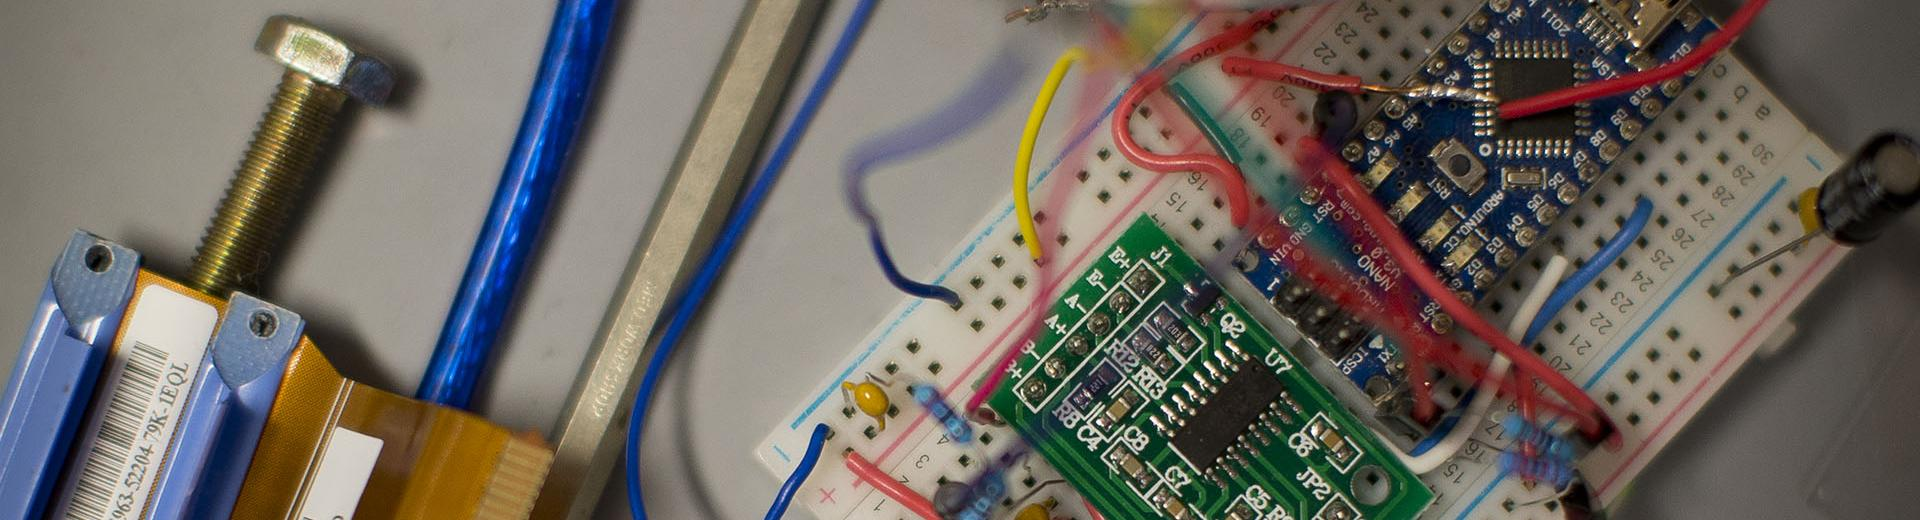 Engineering circuit board and network wiring